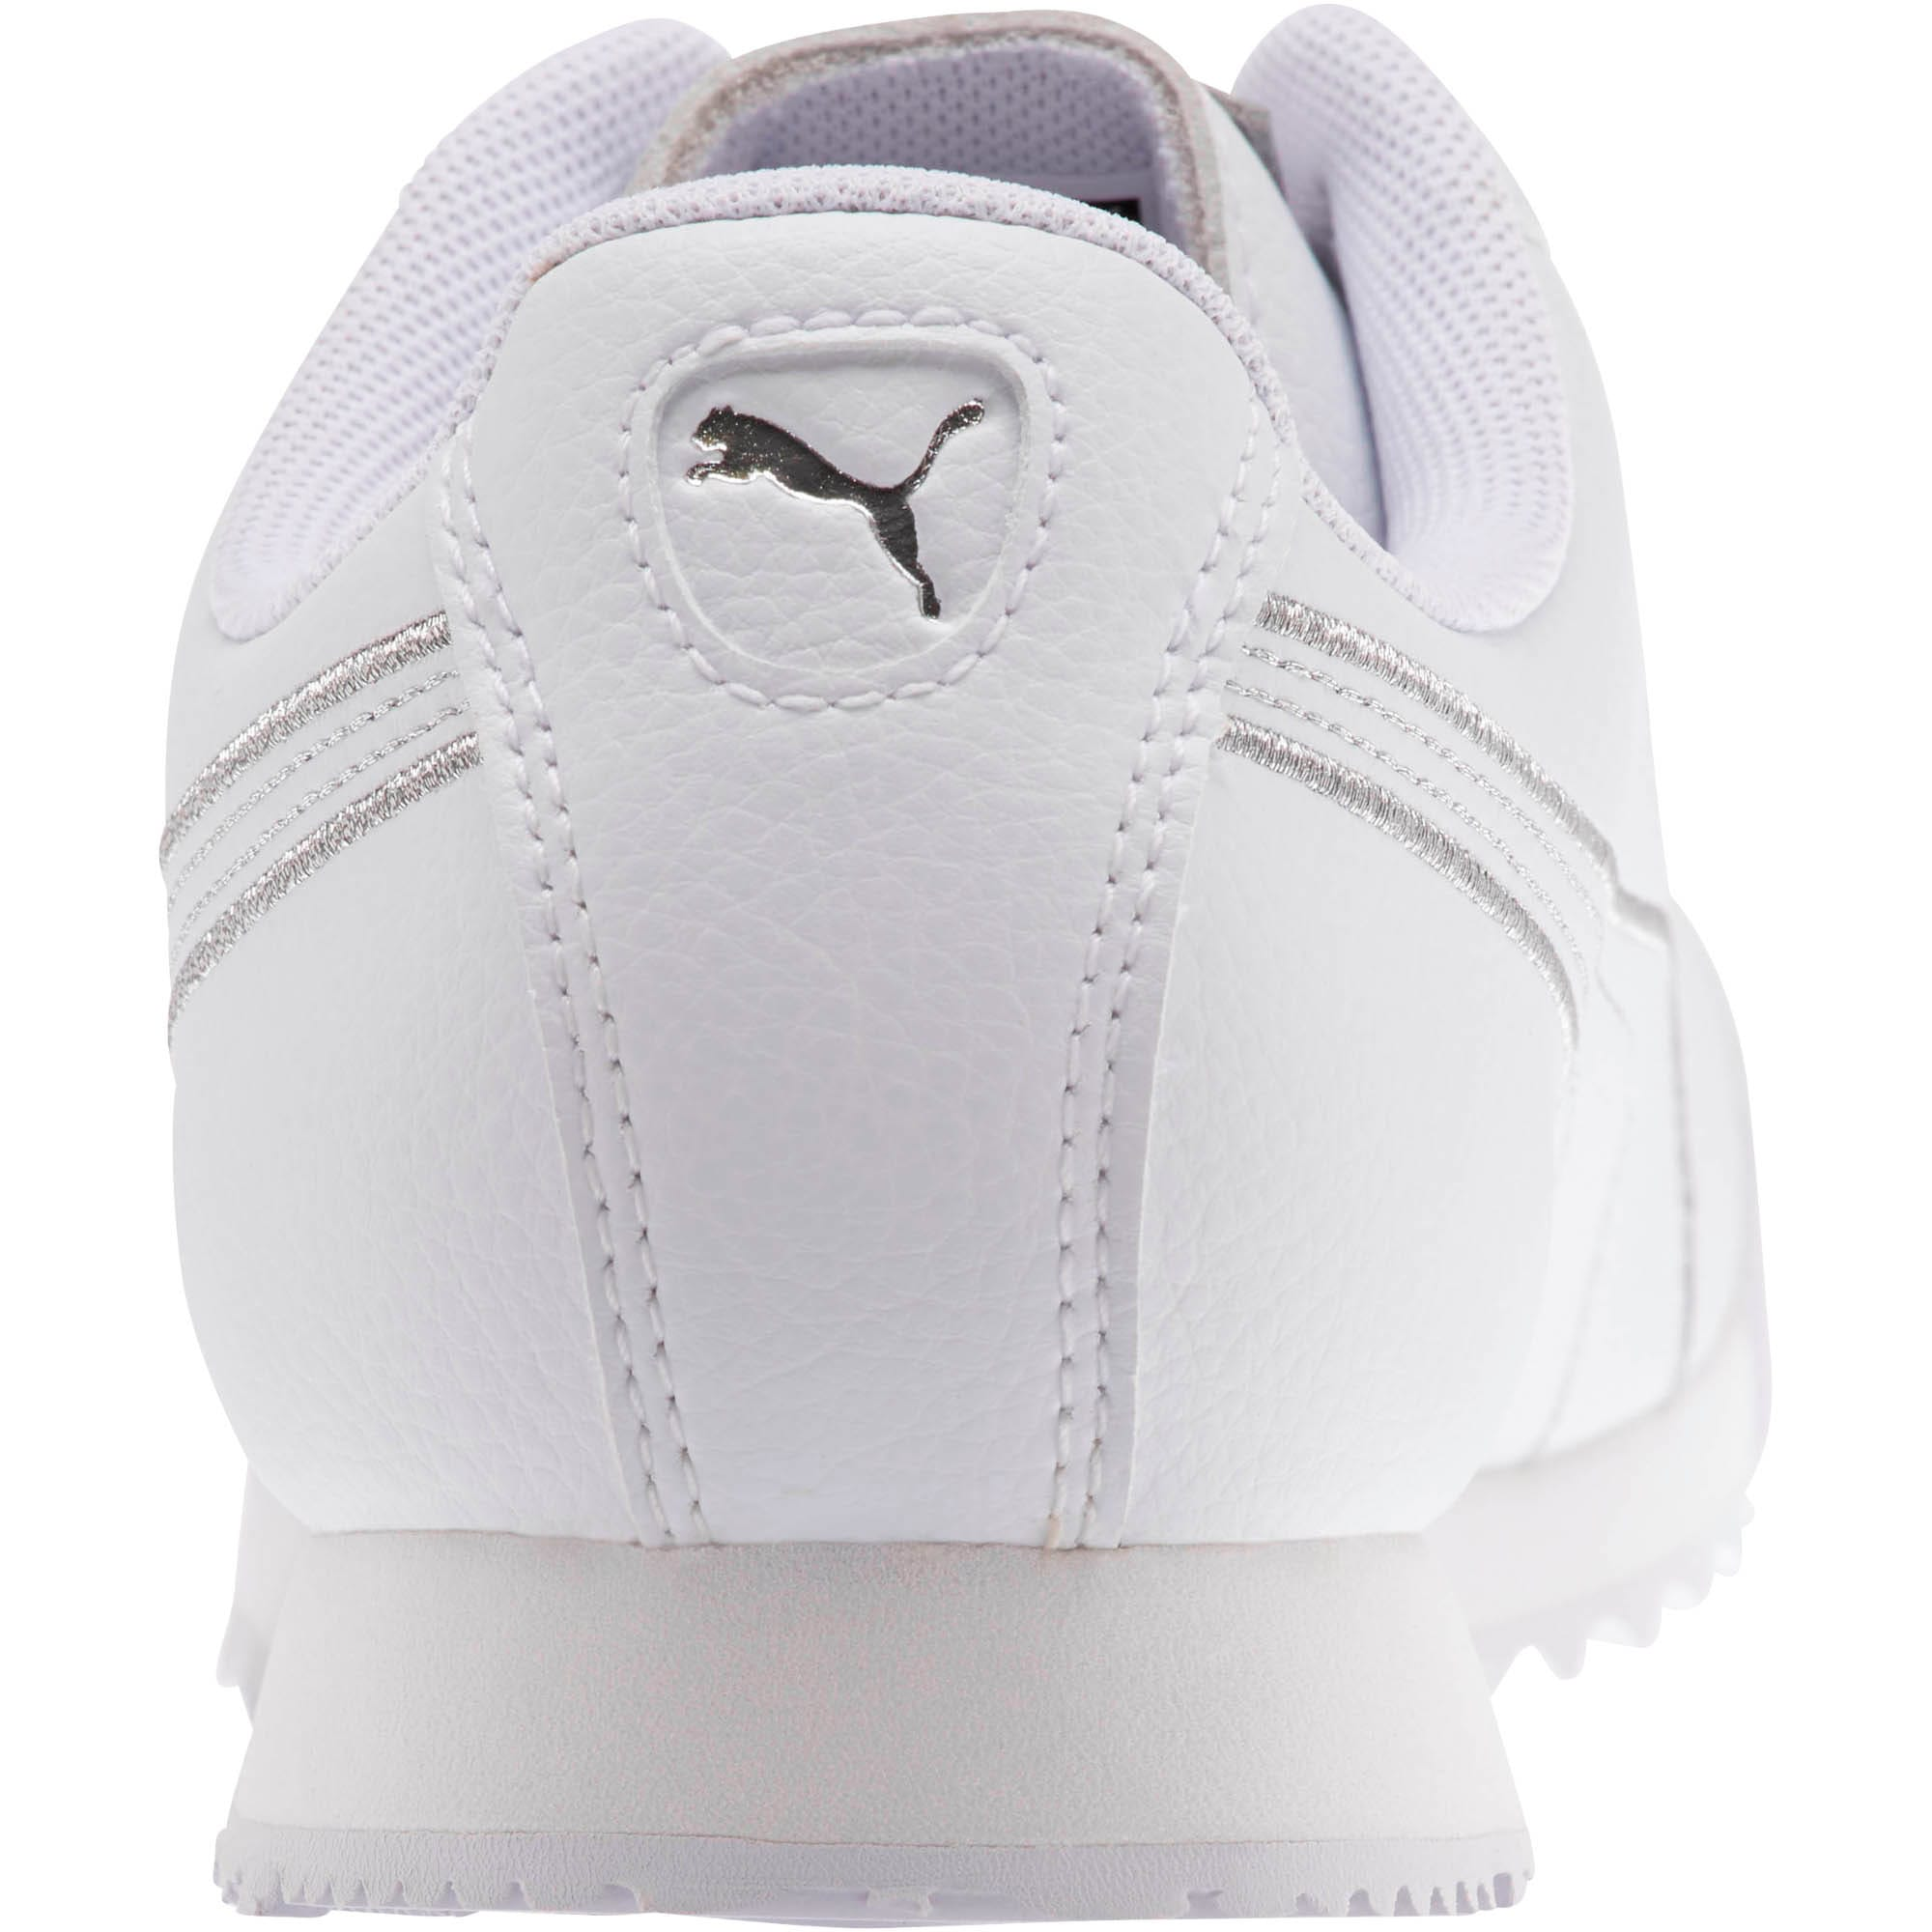 Thumbnail 3 of Roma Metallic Stitch Women's Sneakers, Puma White-Puma Silver, medium